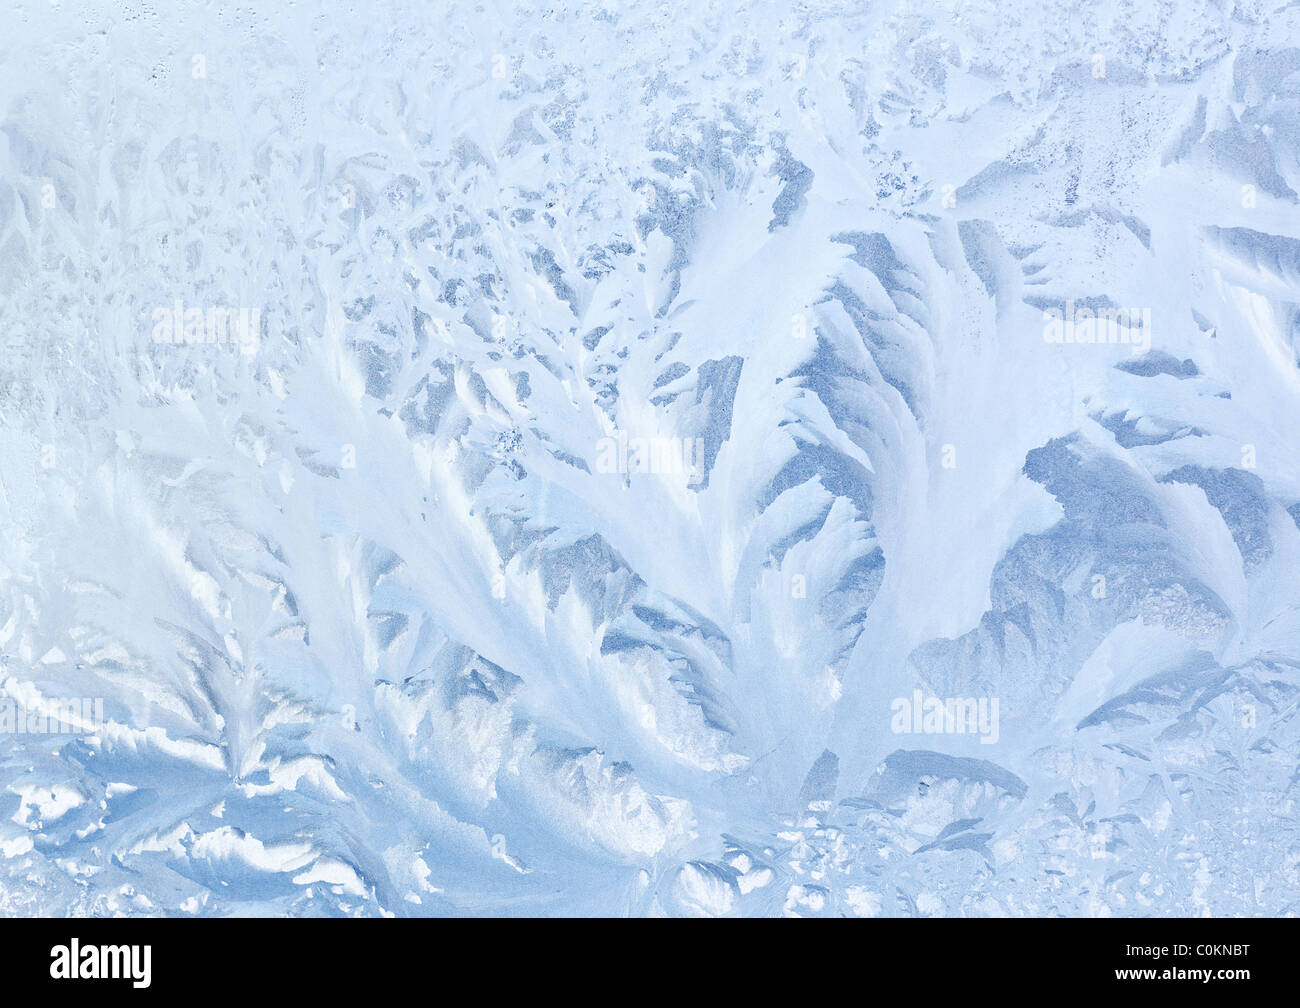 Frozen glass texture or background. - Stock Image